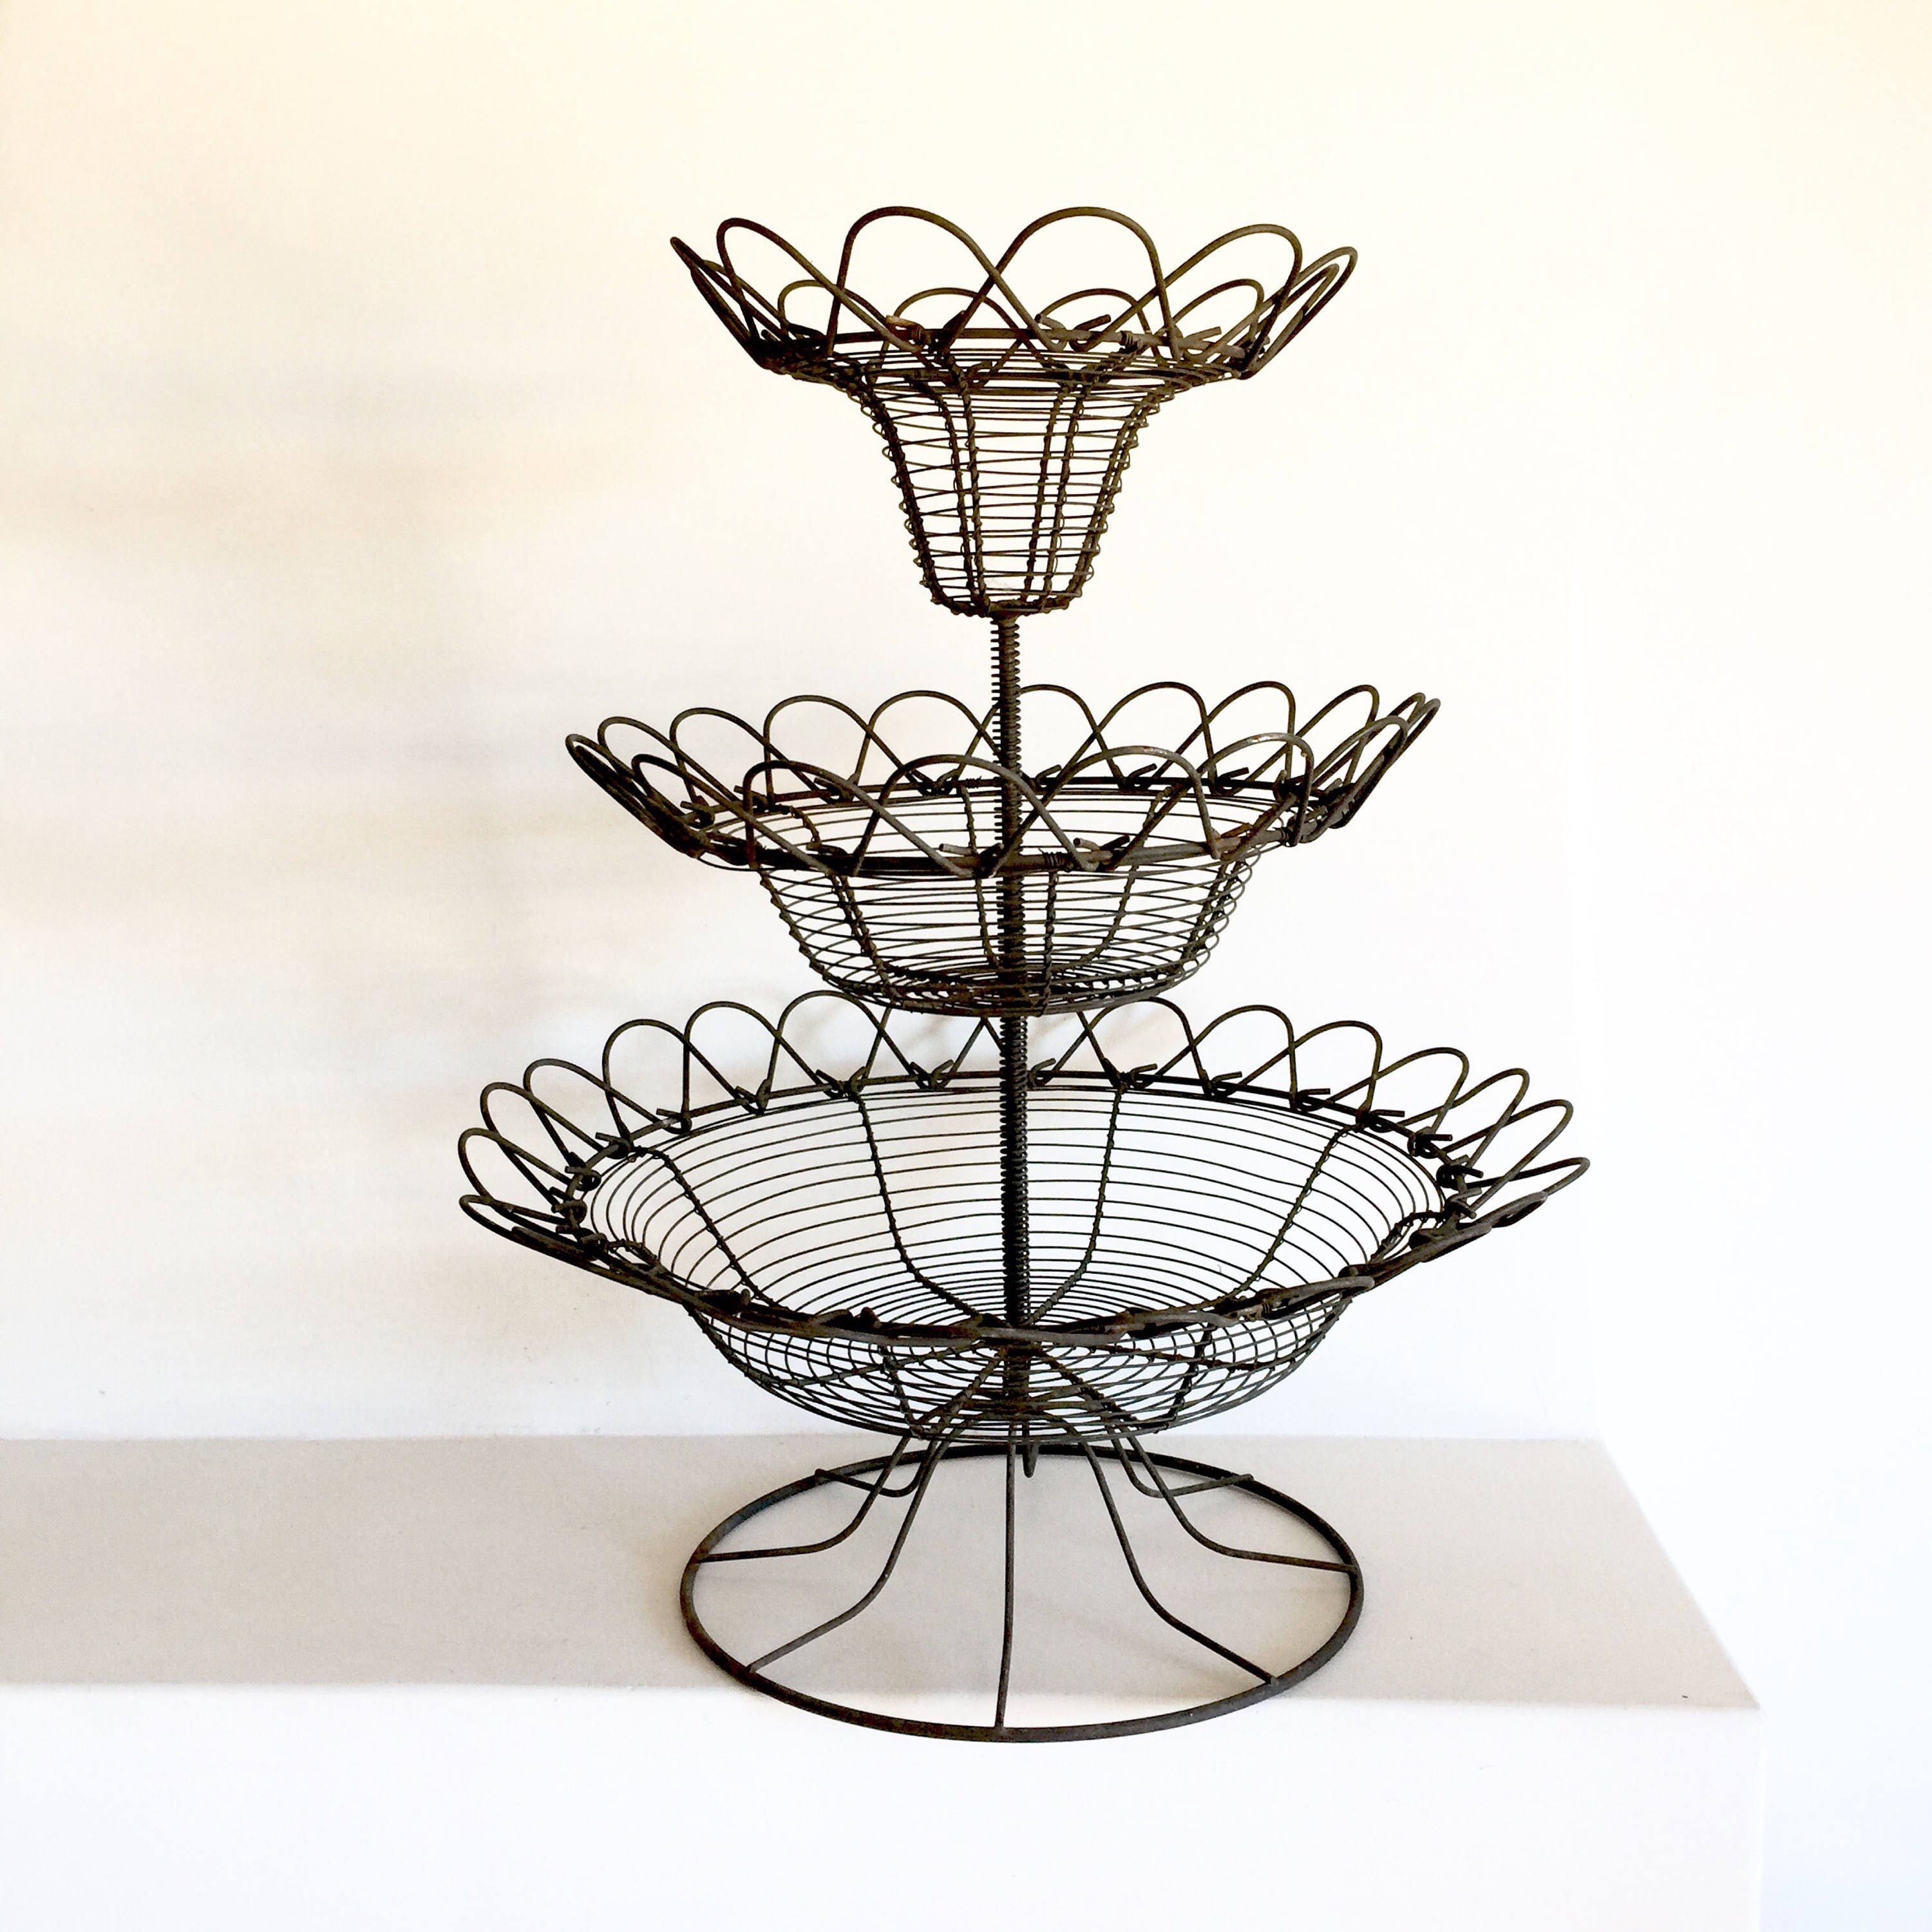 French Vintage Fruit Stand Fruit Basket French Wire Display Stand 3 Tier Wire Stand Metal Wire Display Basket